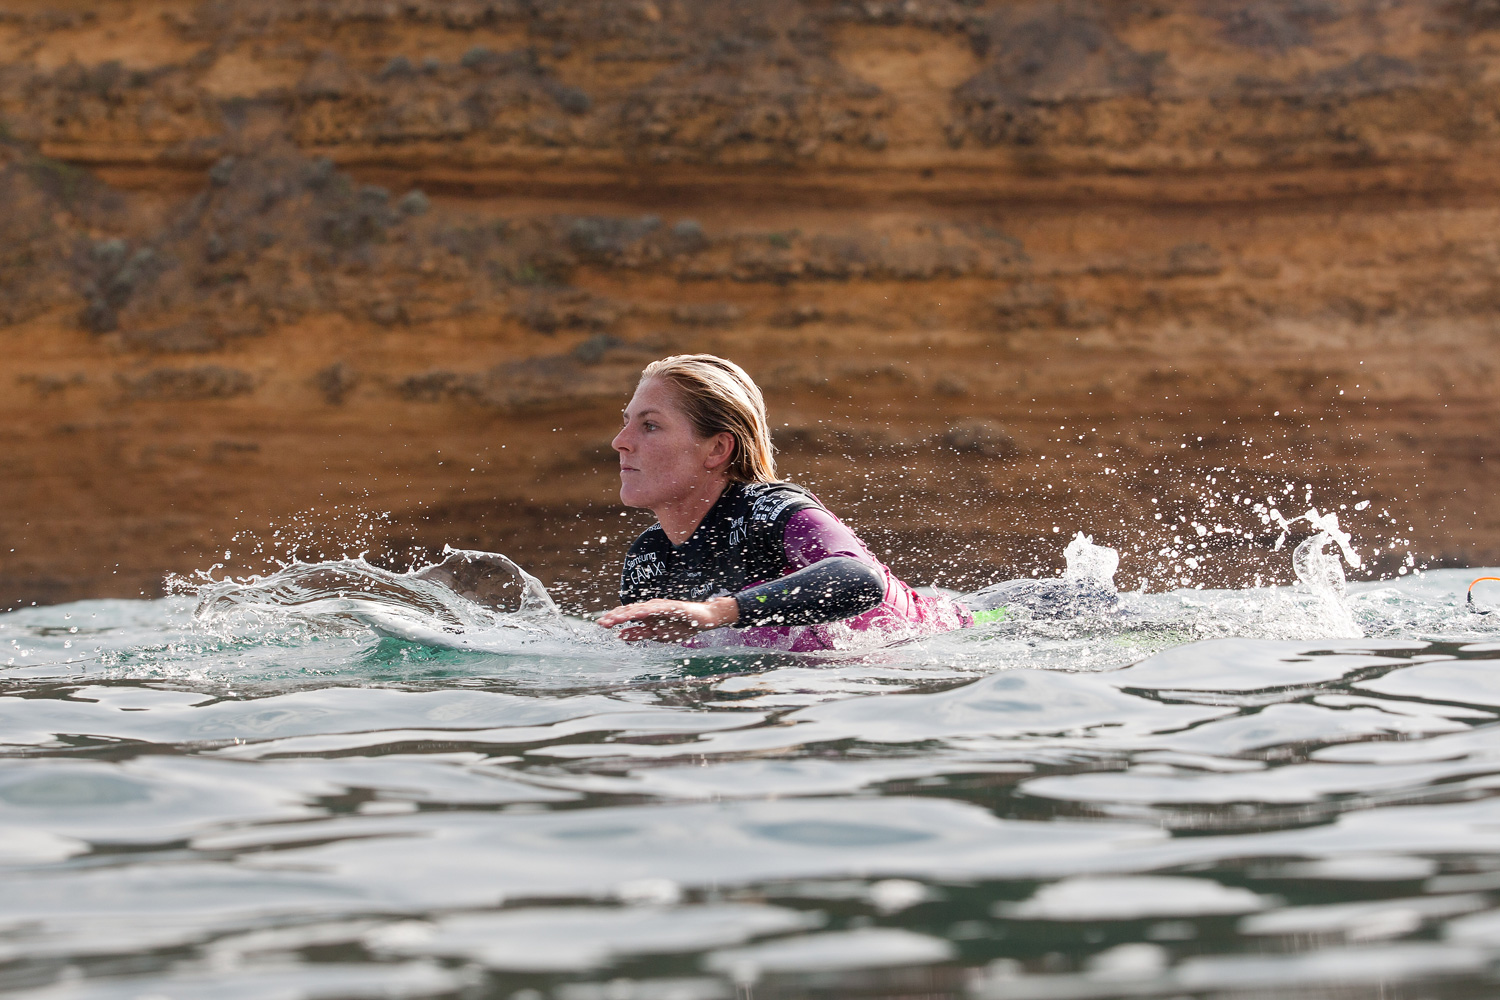 Stephanie Gilmore of Australia advanced into Round 3 of the Rip Curl Pro Bells Beach with a score of 13.33.